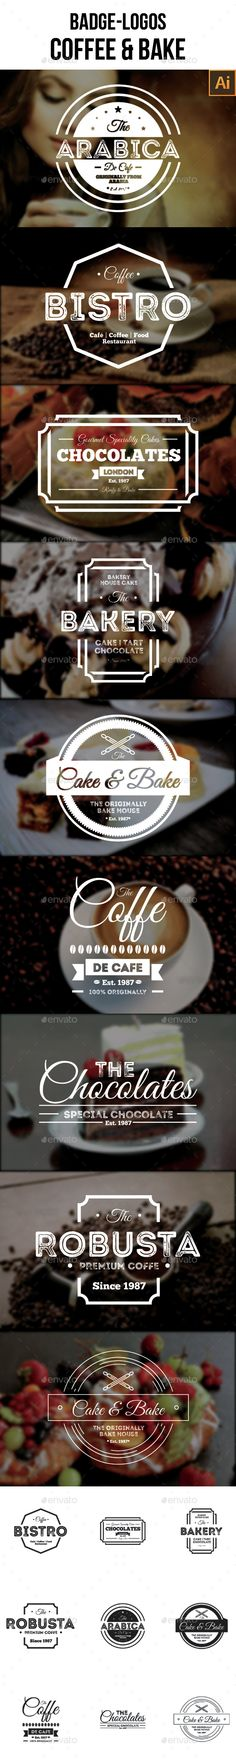 Badge-Logo Coffee and Bake Template Vector EPS, AI. Download here: http://graphicriver.net/item/badgelogo-coffee-and-bake/15394497?ref=ksioks